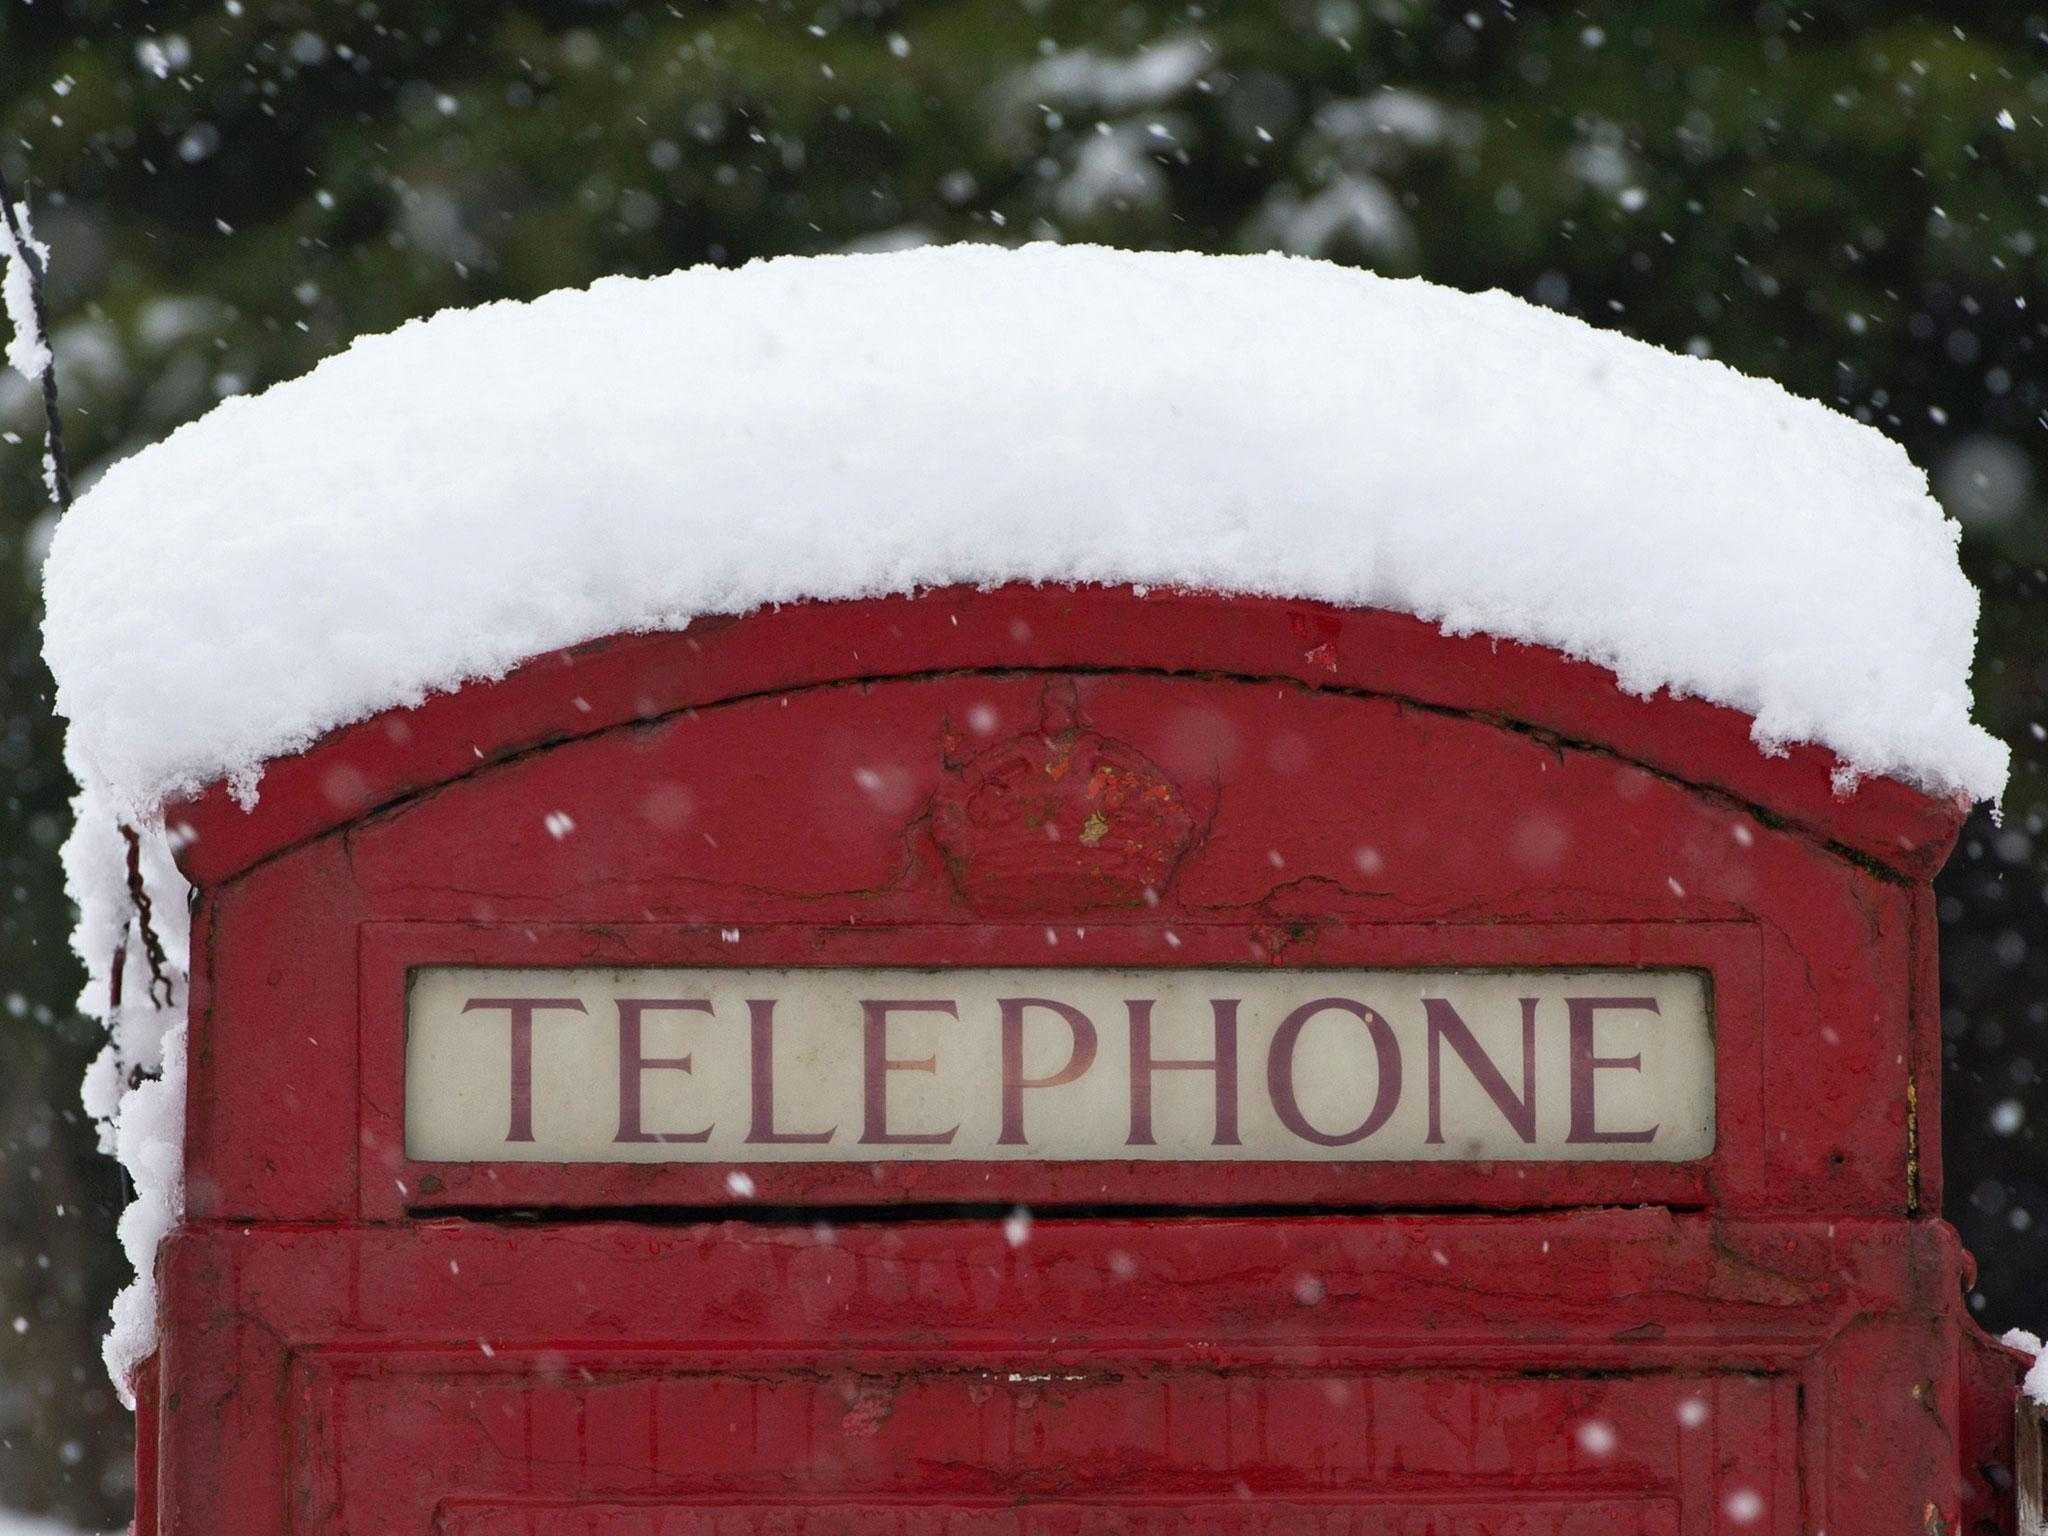 BT kills the phone box and announces new wi-fi and phone